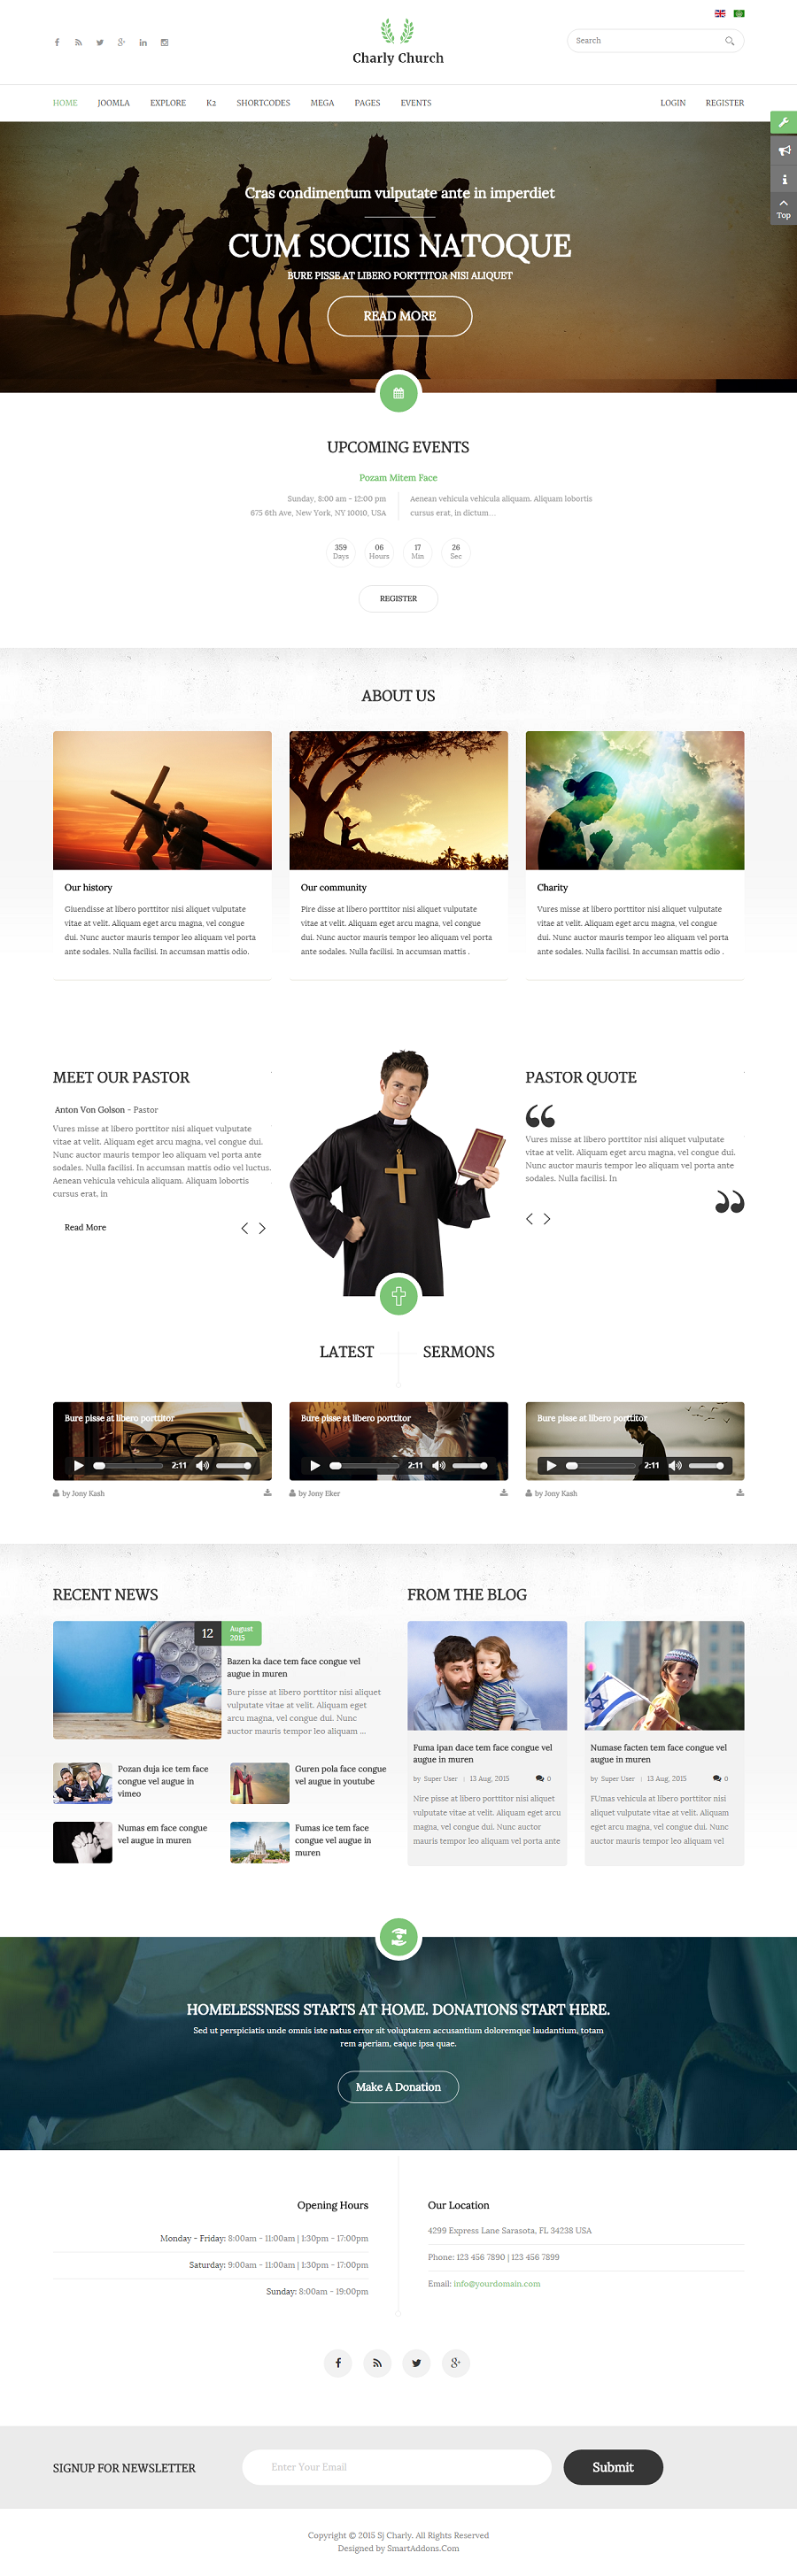 SJ Charly - Responsive Joomla Church Template - 02_index1.png